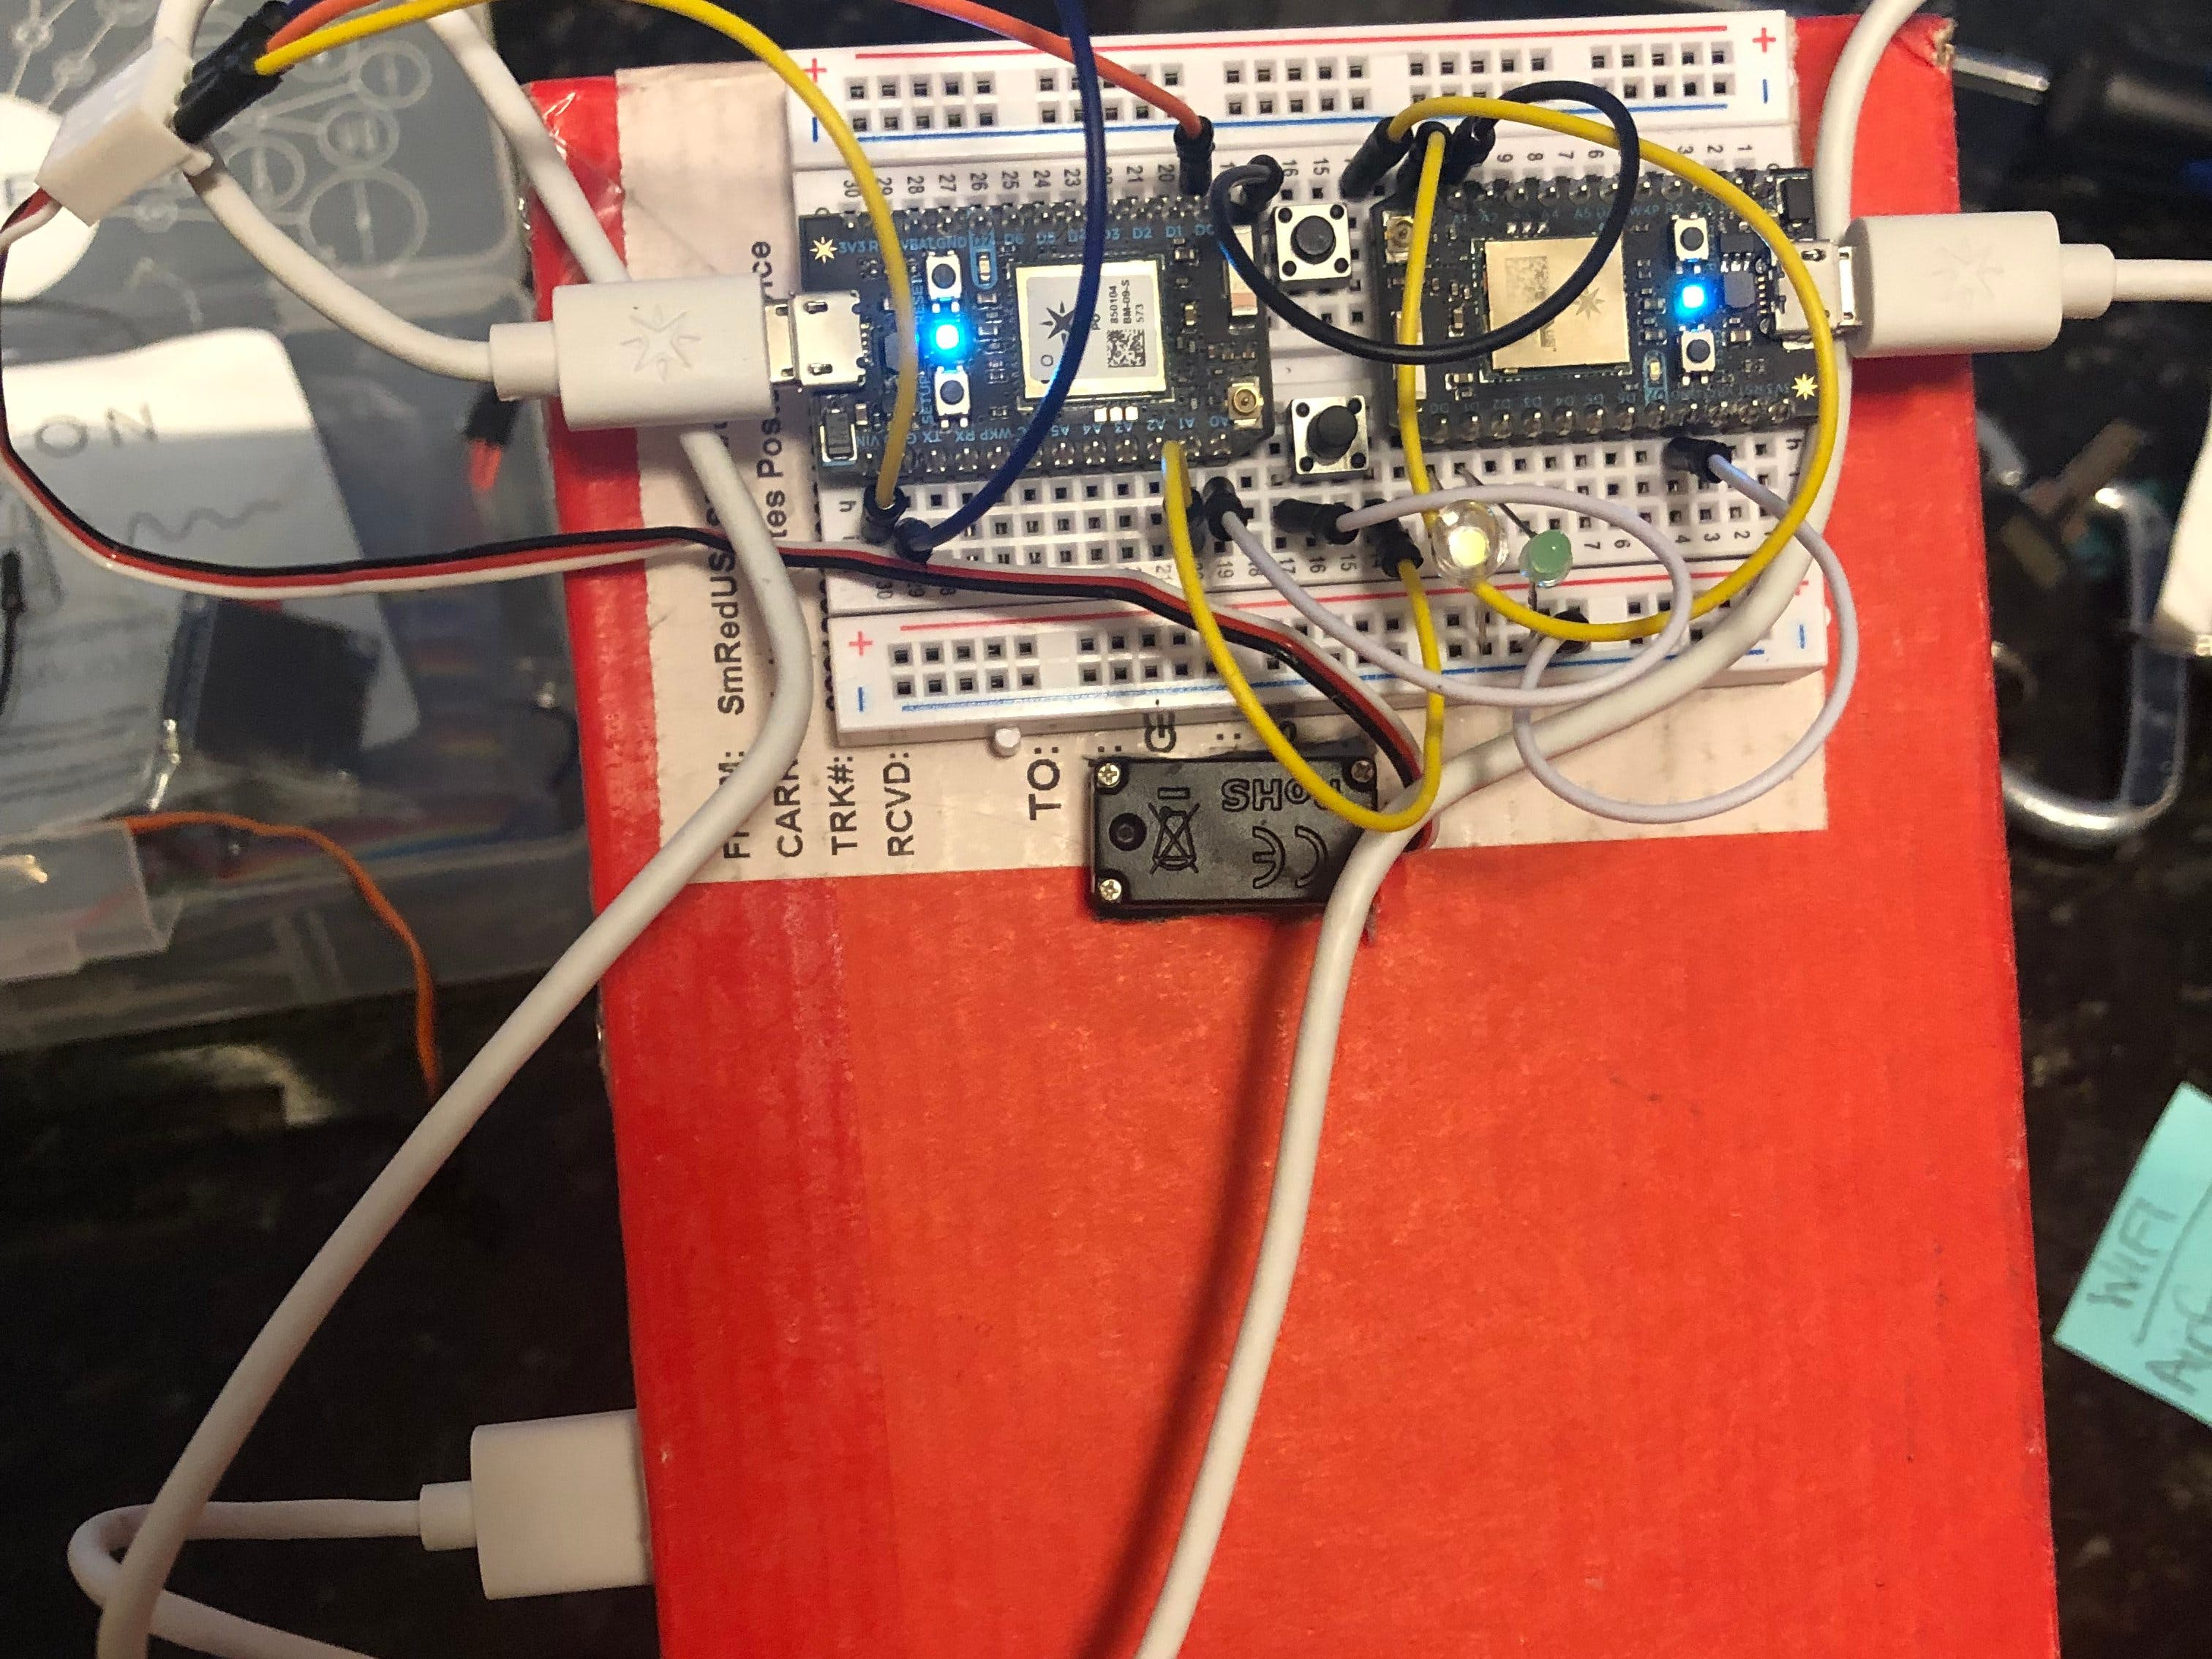 Automatic Deadbolt MEGR 3171 IoT Project